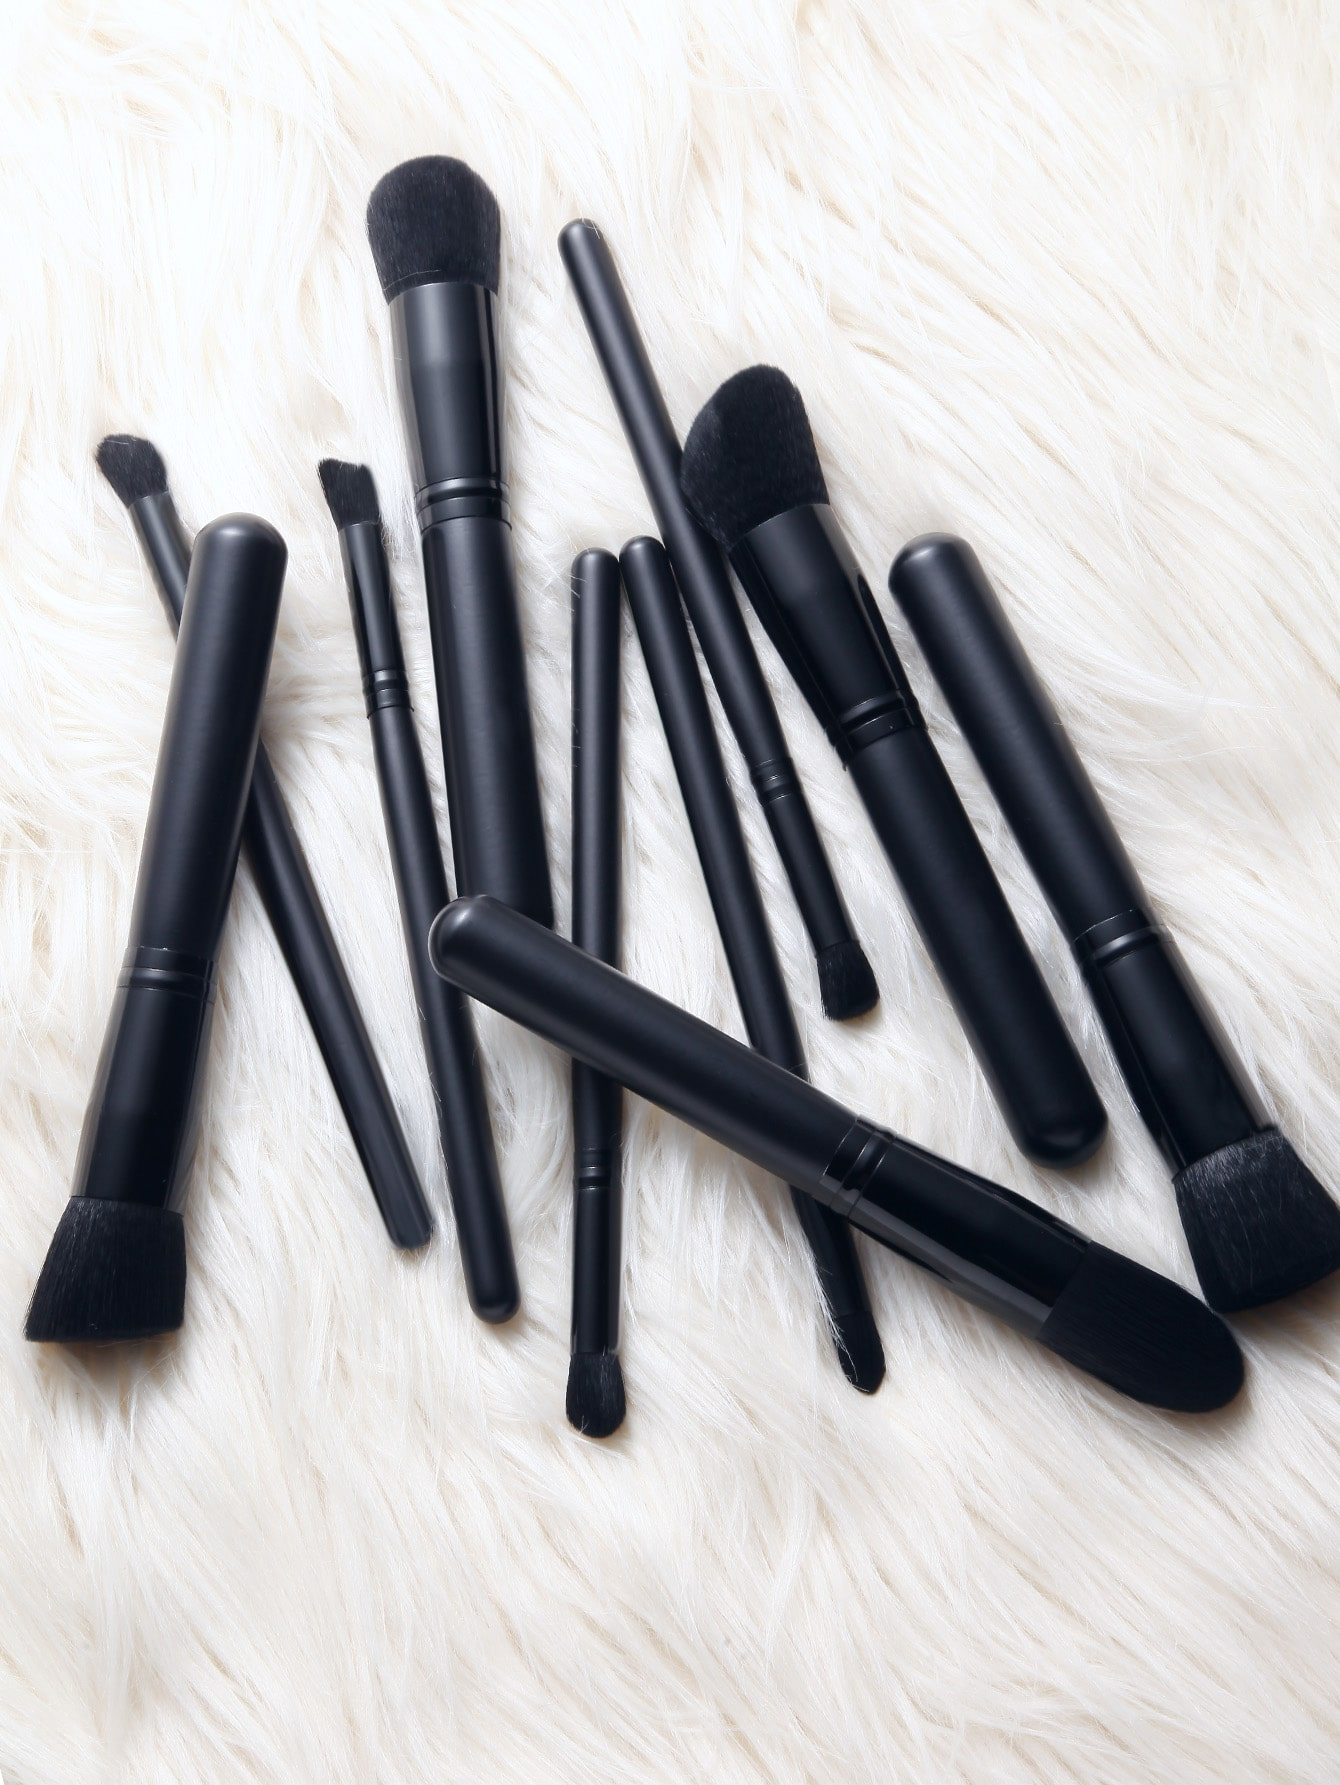 Image of 10PCS Black Metallic Makeup Brush Set